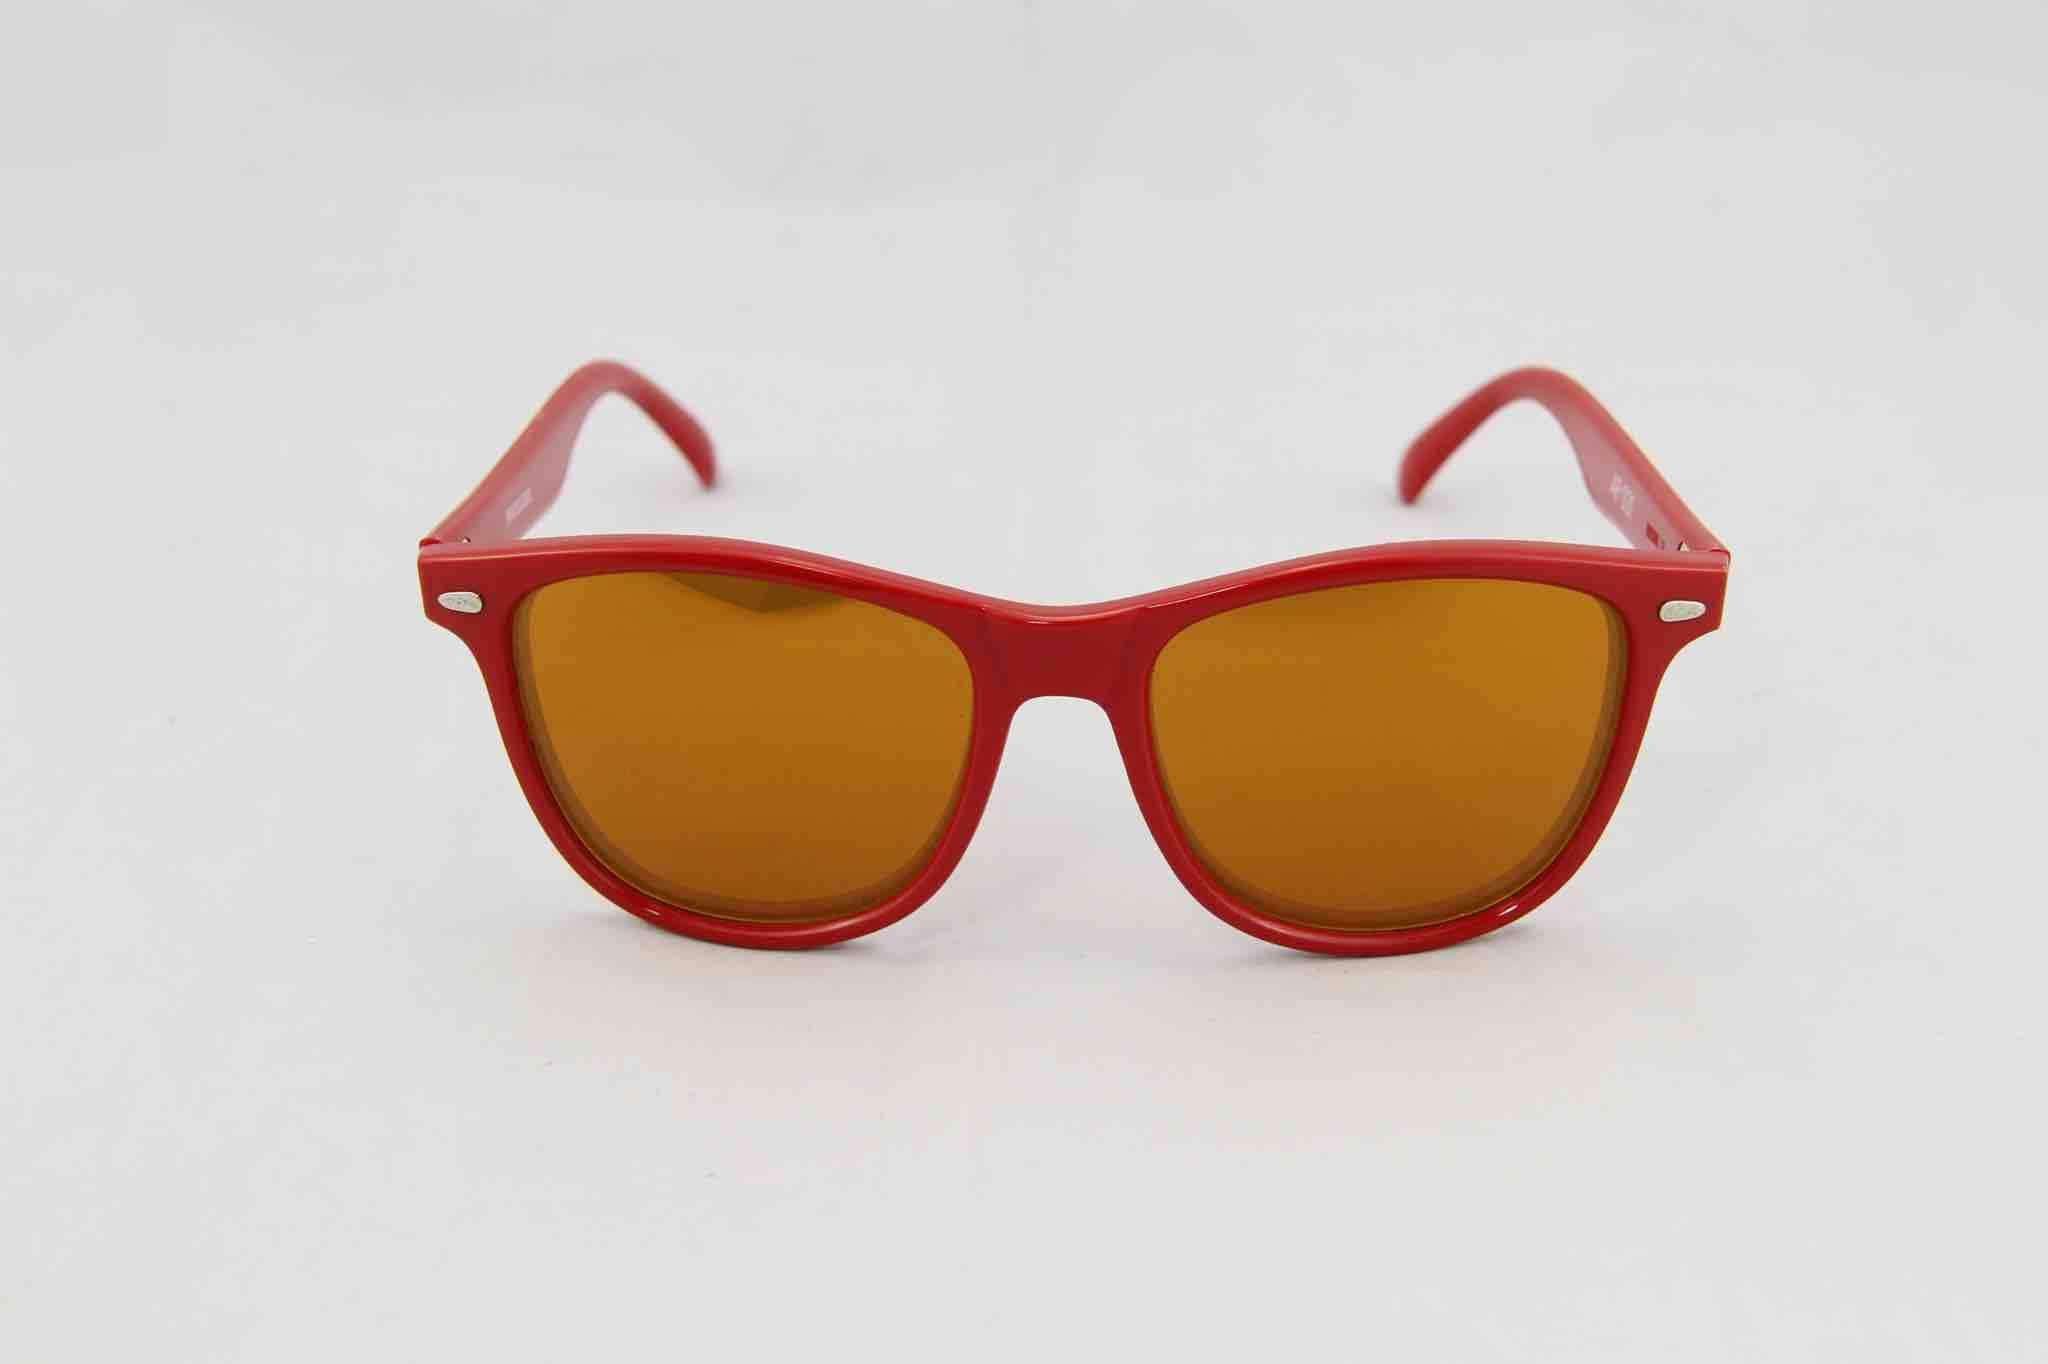 f205654eccdd Alain Prost 031 Red Sunglasses Brown Flash Lenses Flash Gold By Vuarnet  Made in France